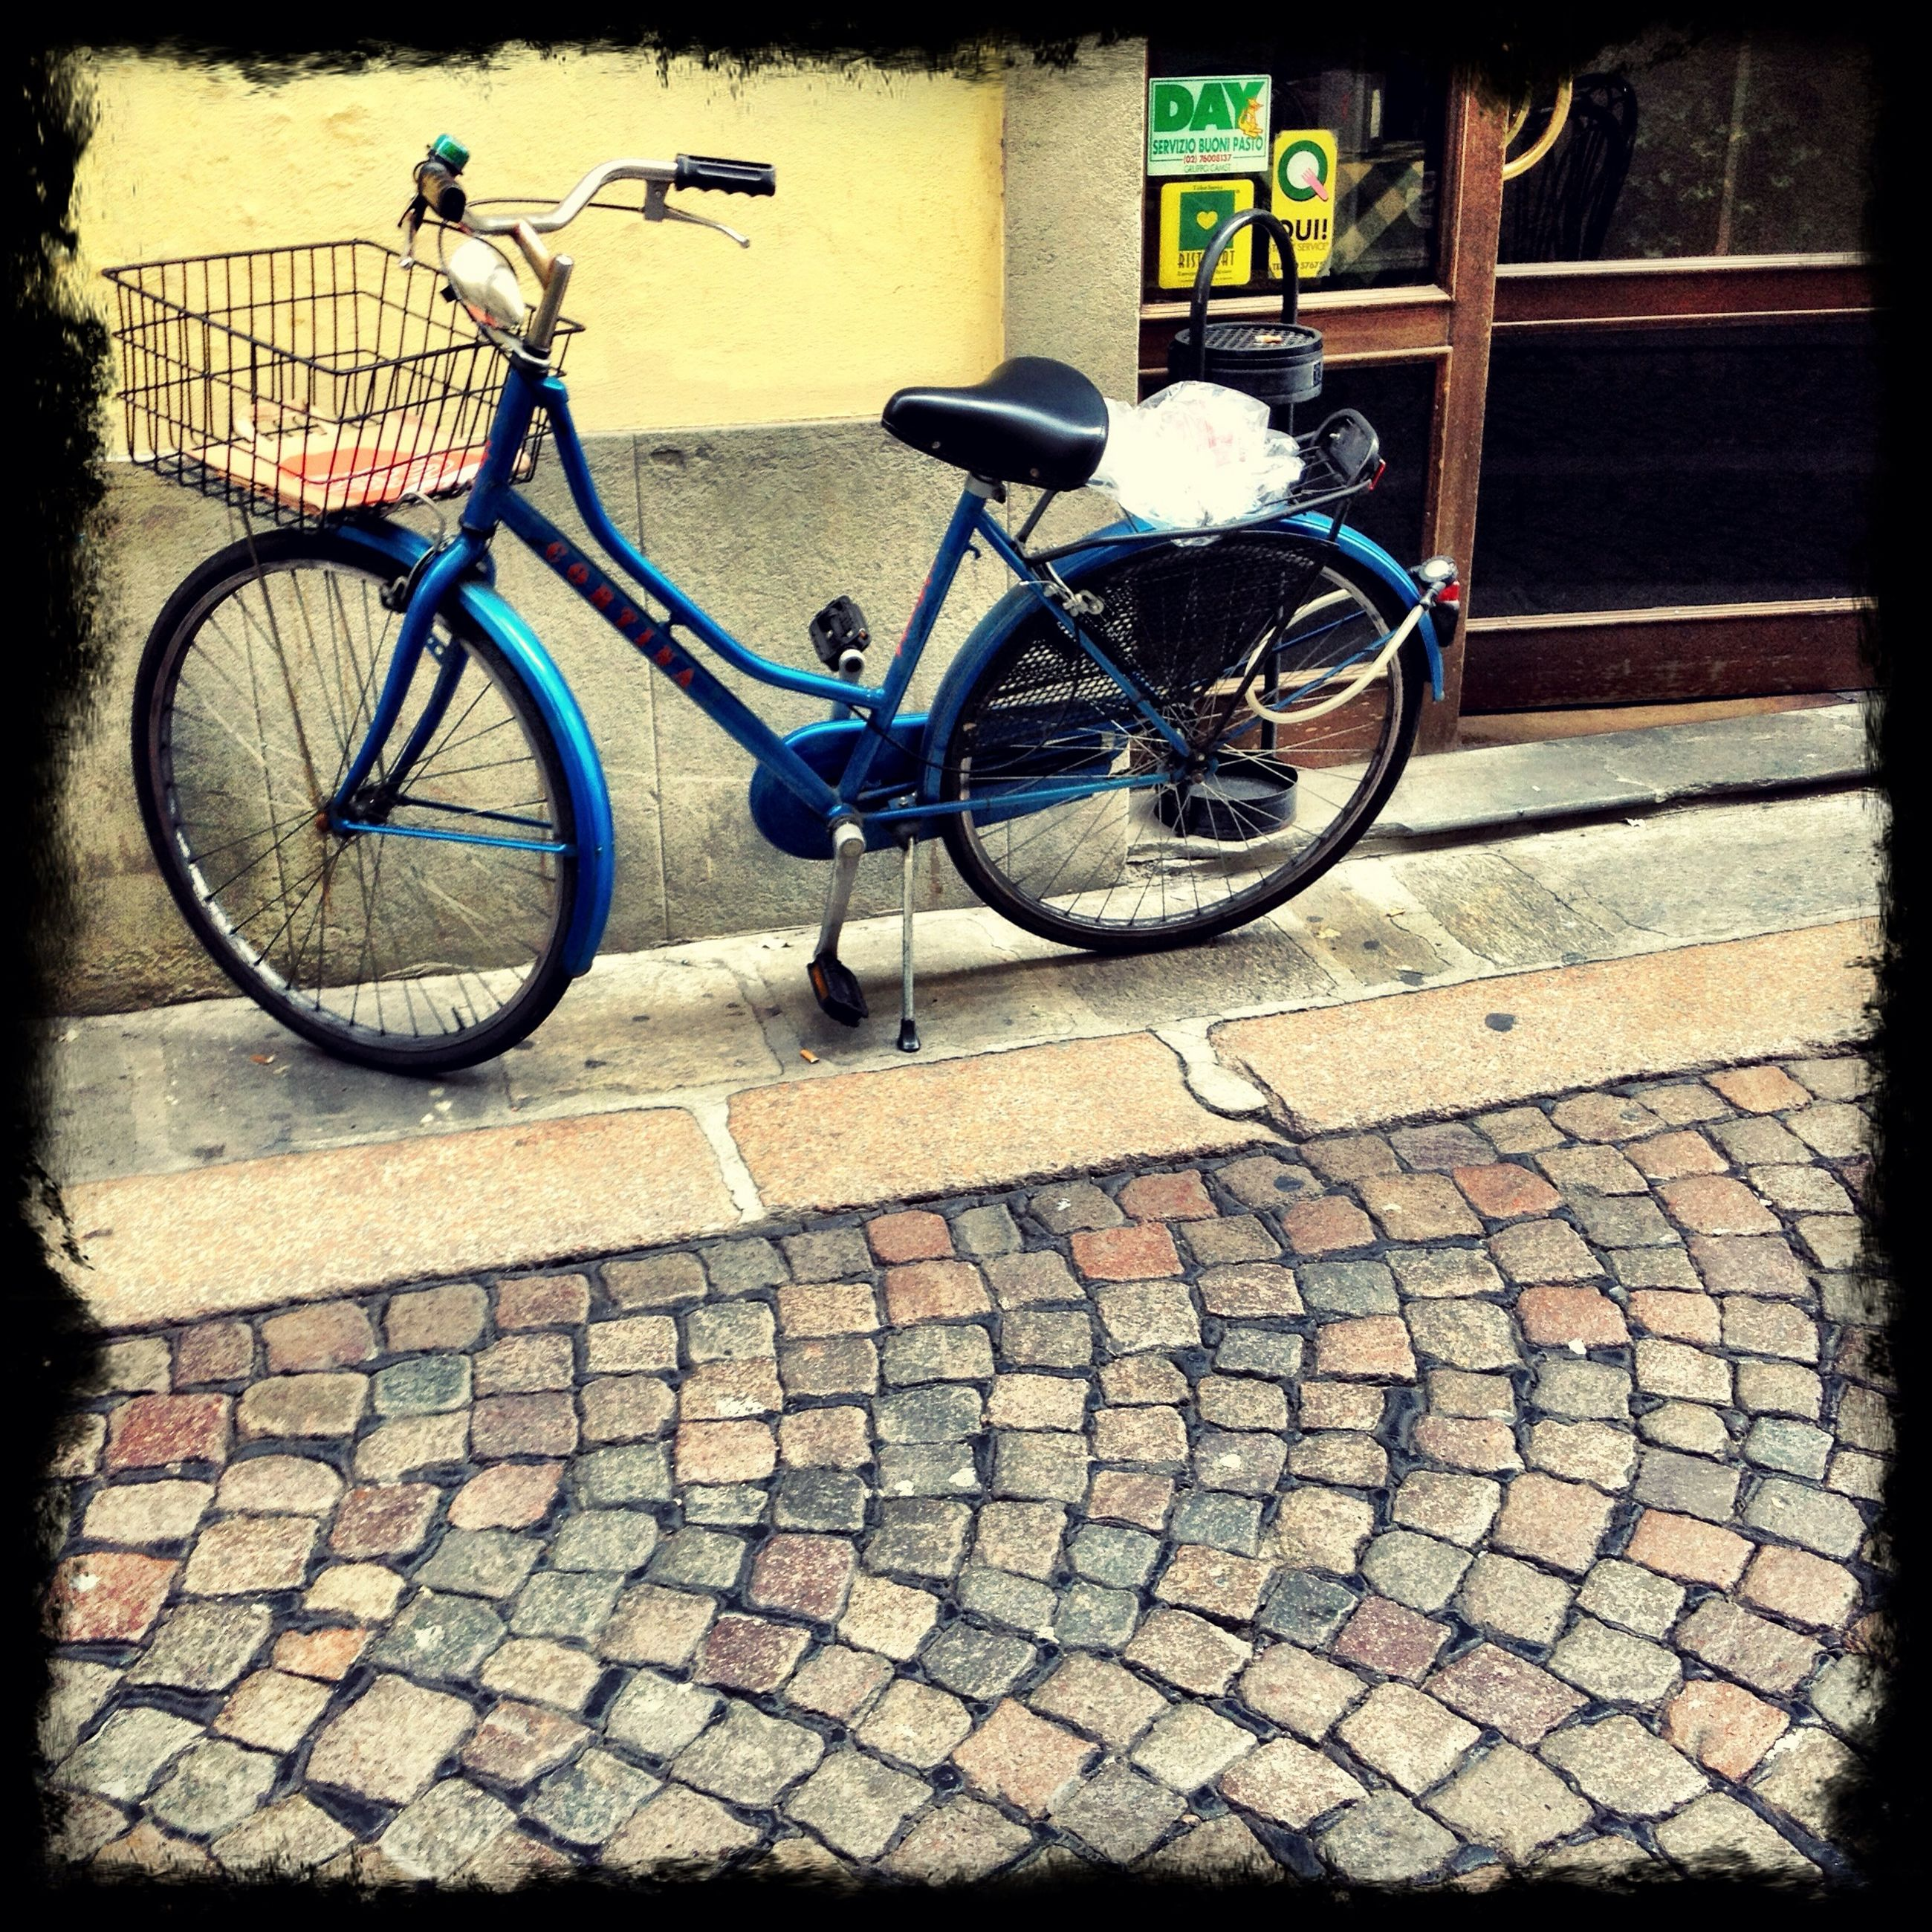 bicycle, transportation, mode of transport, land vehicle, stationary, parked, parking, street, wheel, transfer print, sidewalk, auto post production filter, cobblestone, outdoors, day, no people, sunlight, cycle, shadow, road